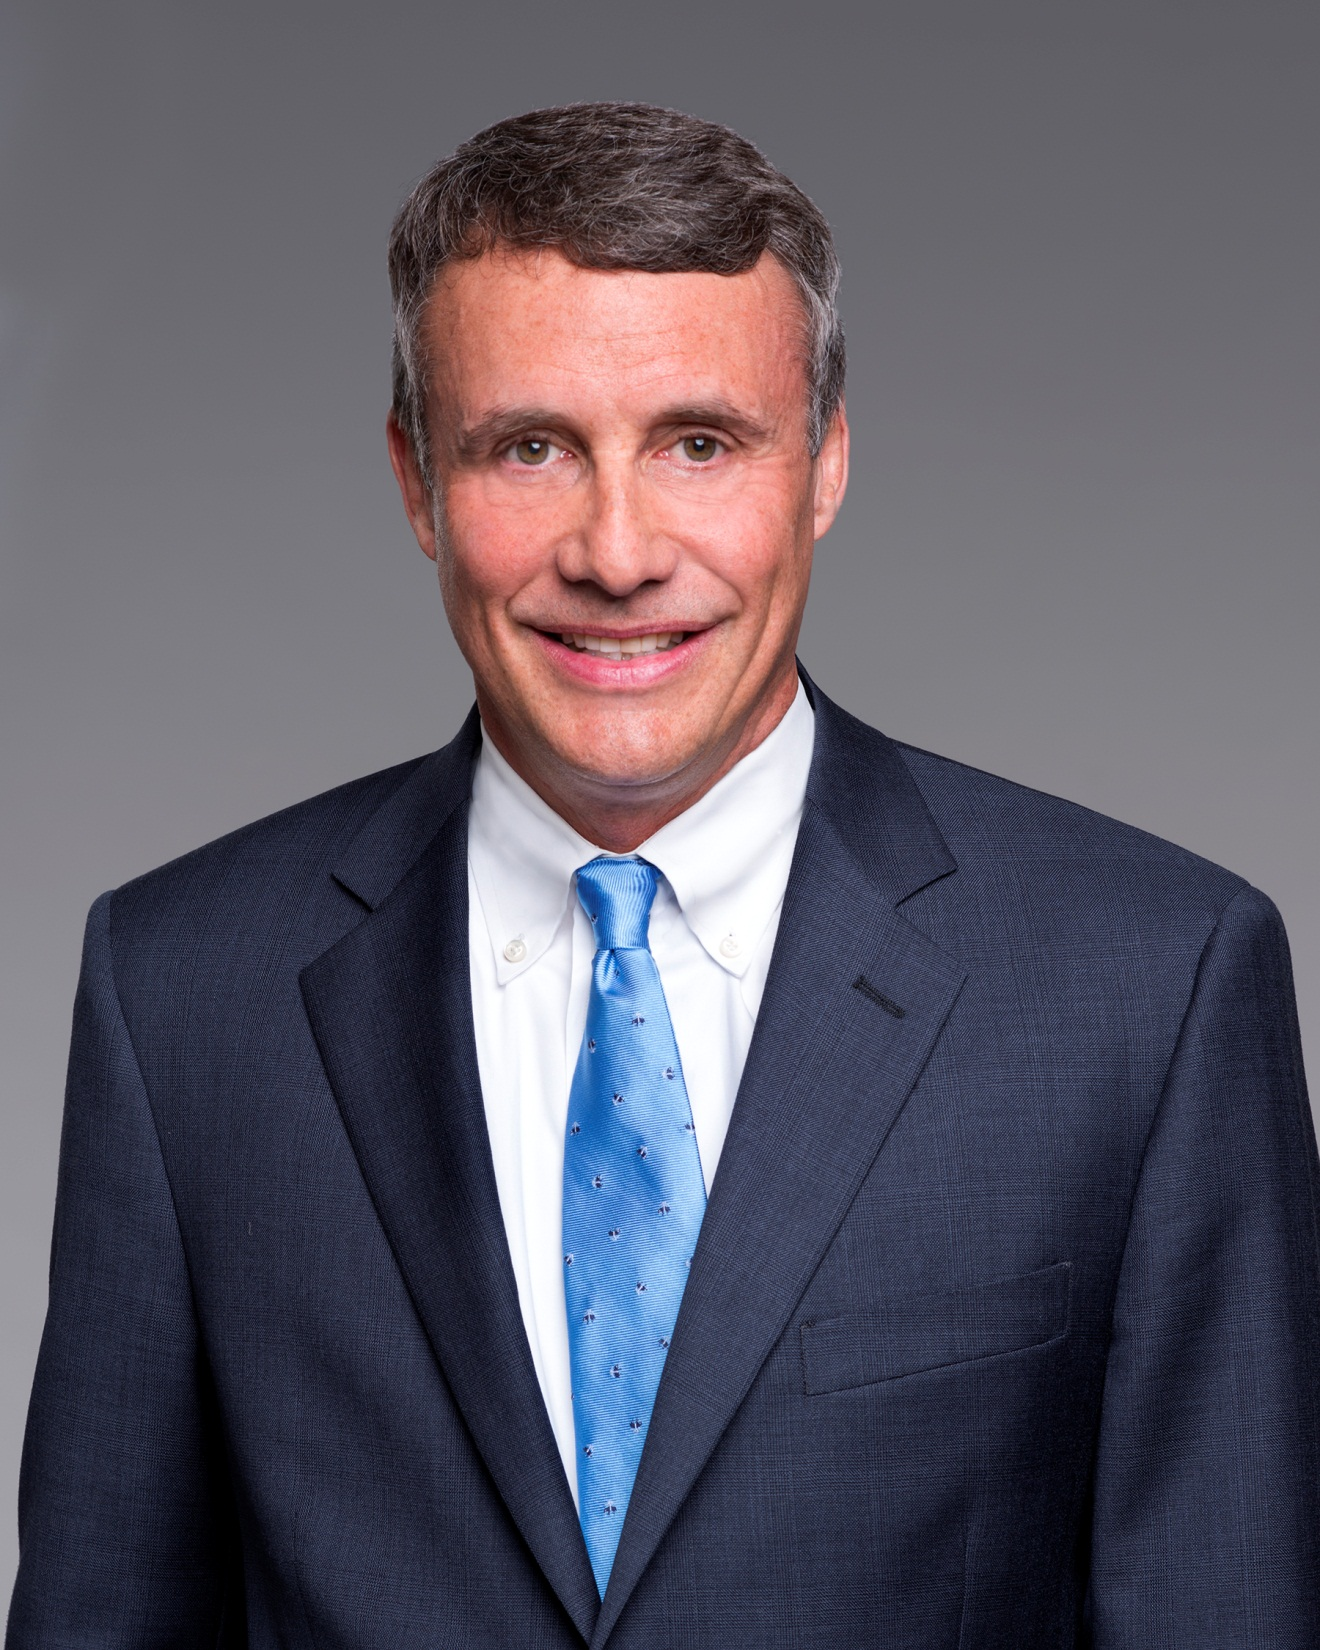 Robert Vingi, financial advisor Seabrook Island SC